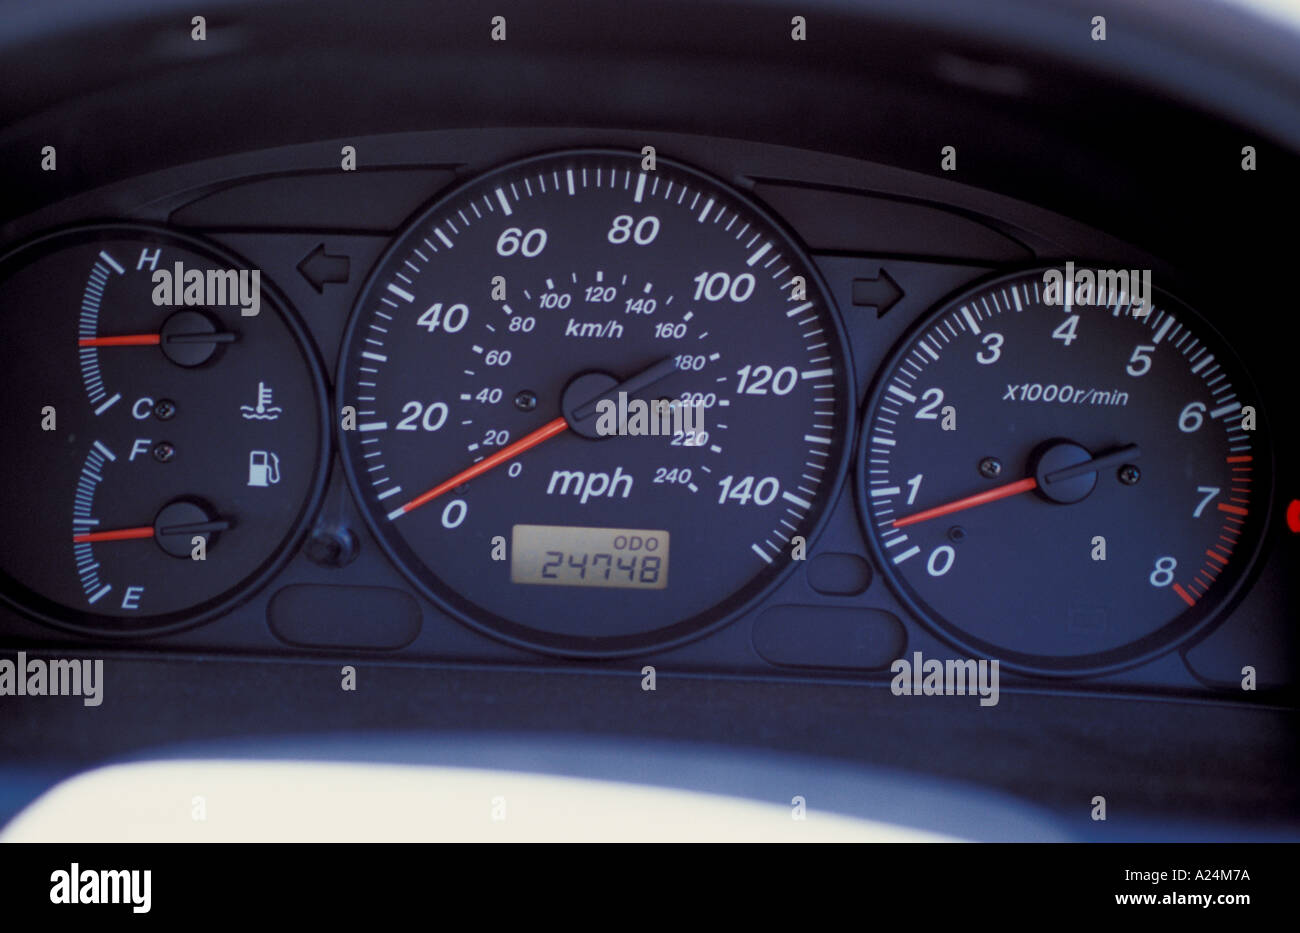 Speedometer odometer rev counter tachometer petrol temperature guage - Stock Image